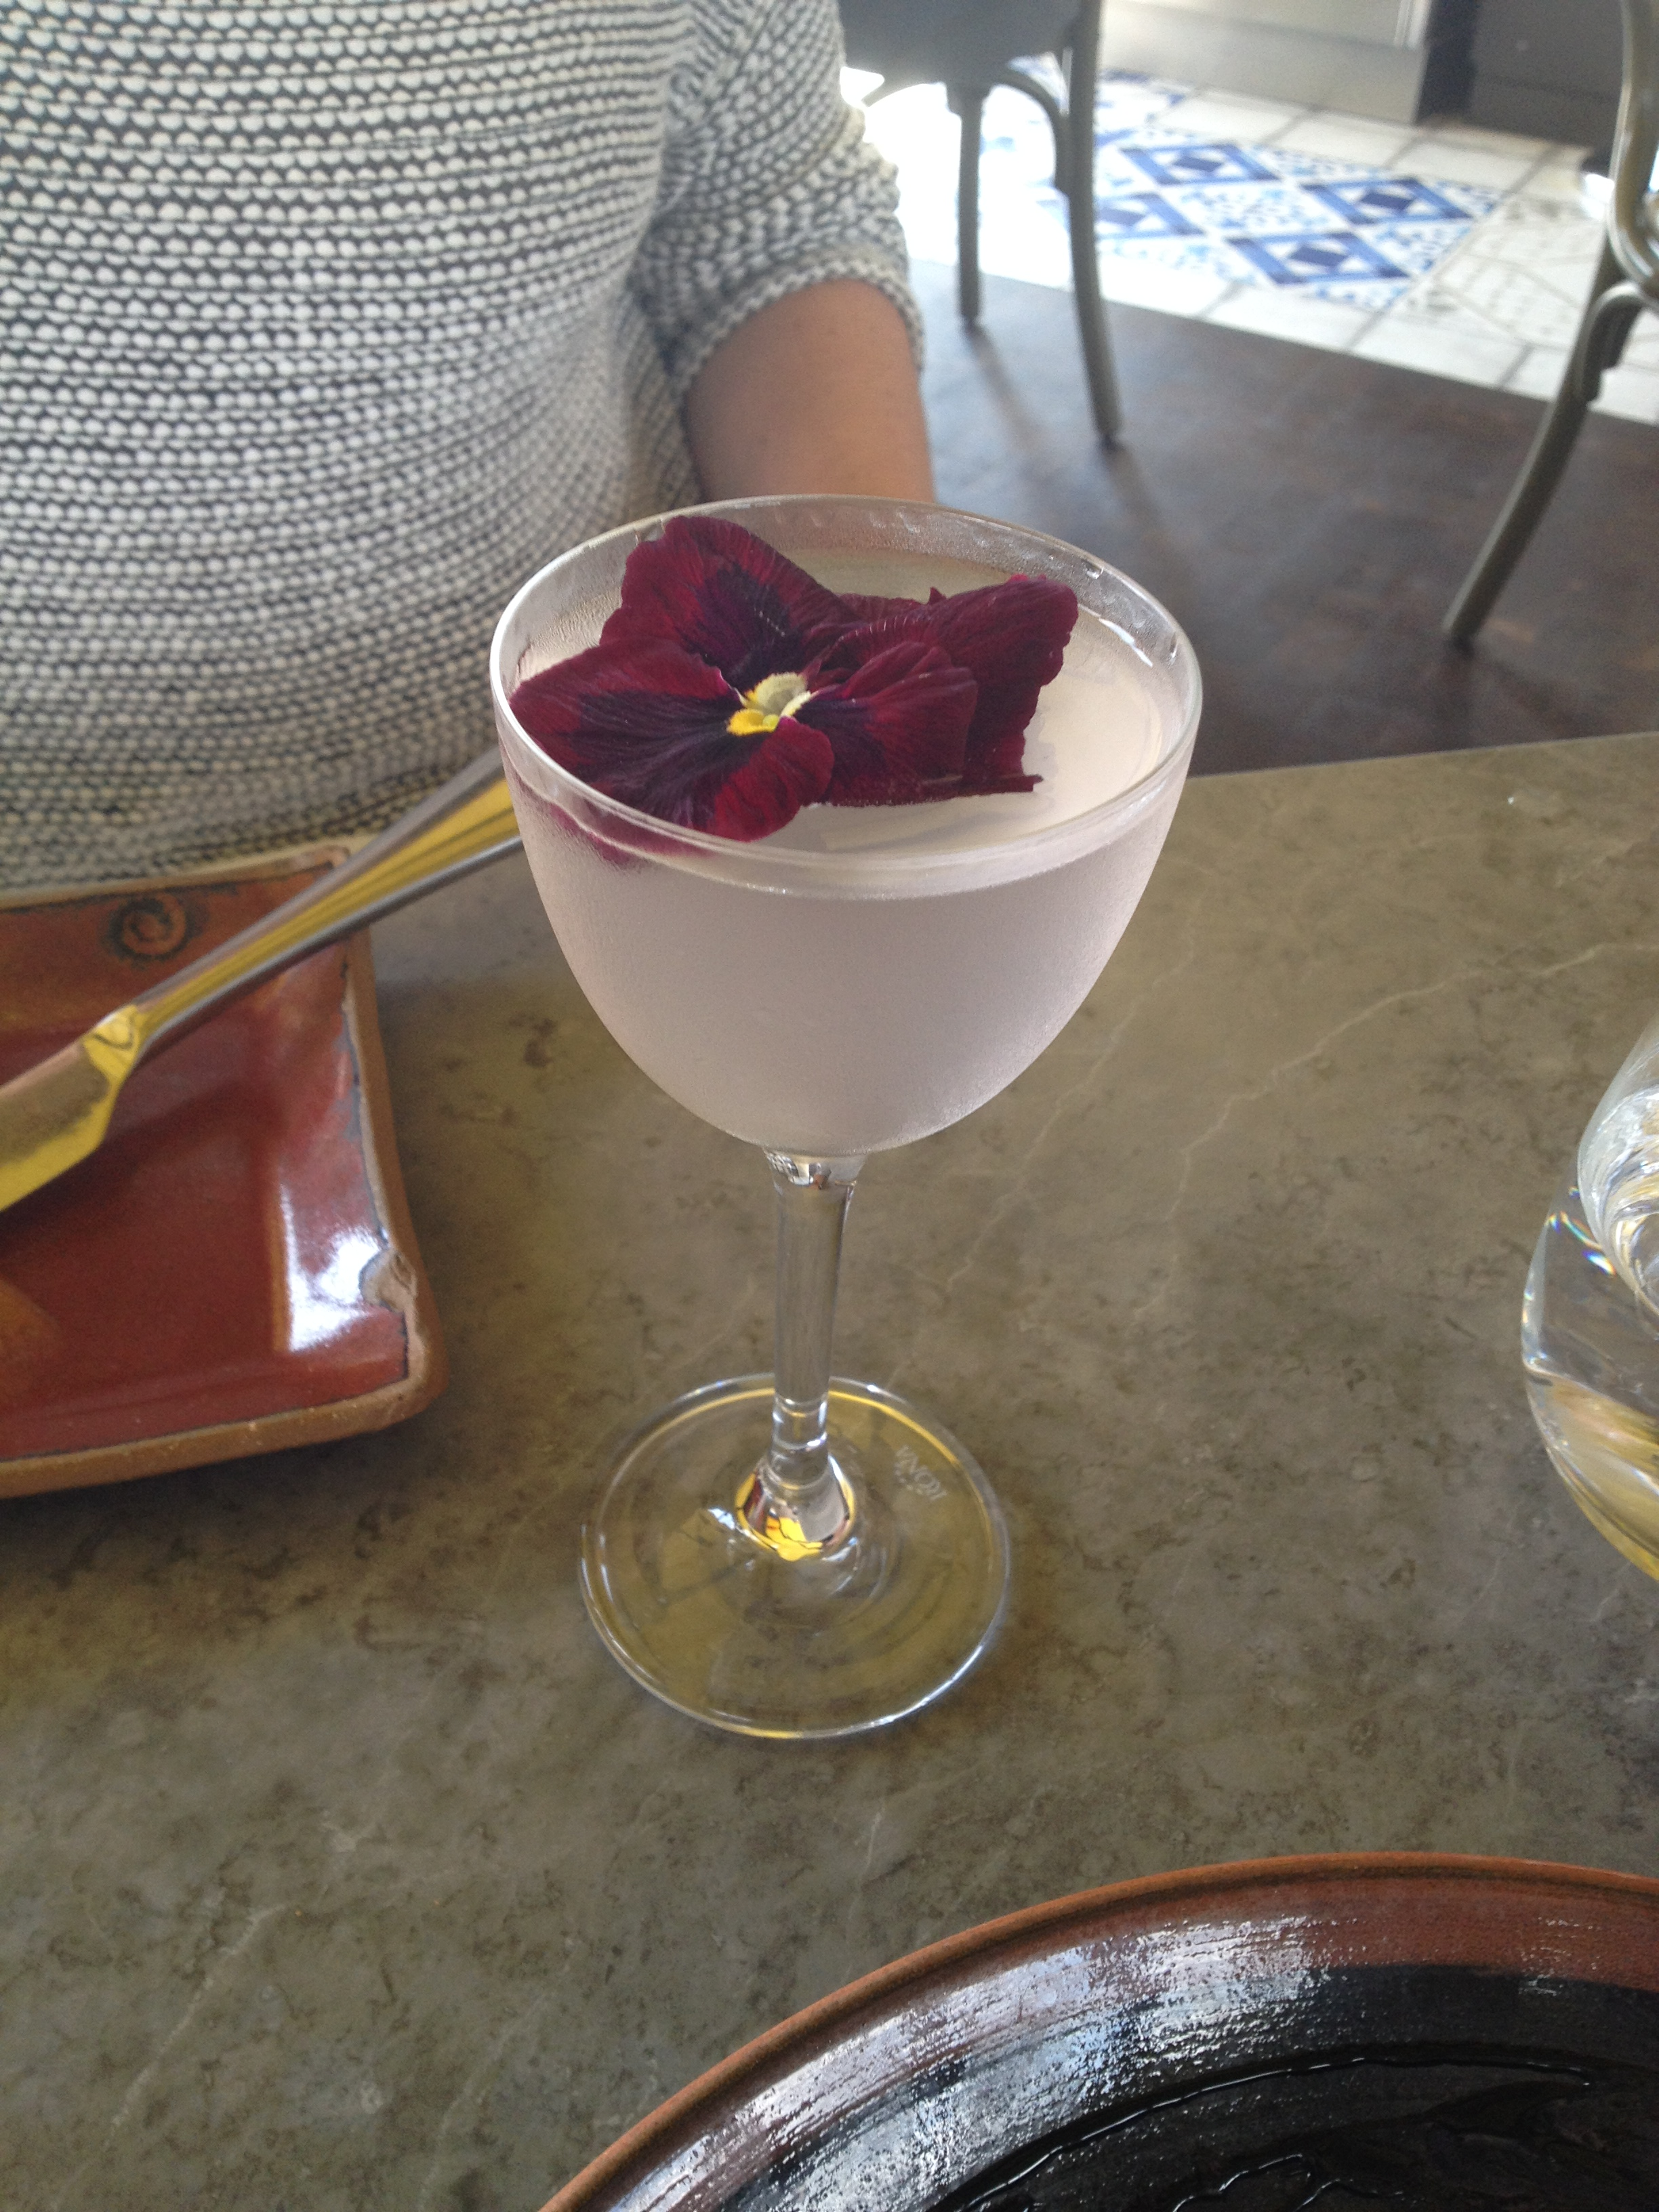 Removed Aviation Cocktail at the Duck & Waffle, topped with a pretty violet!